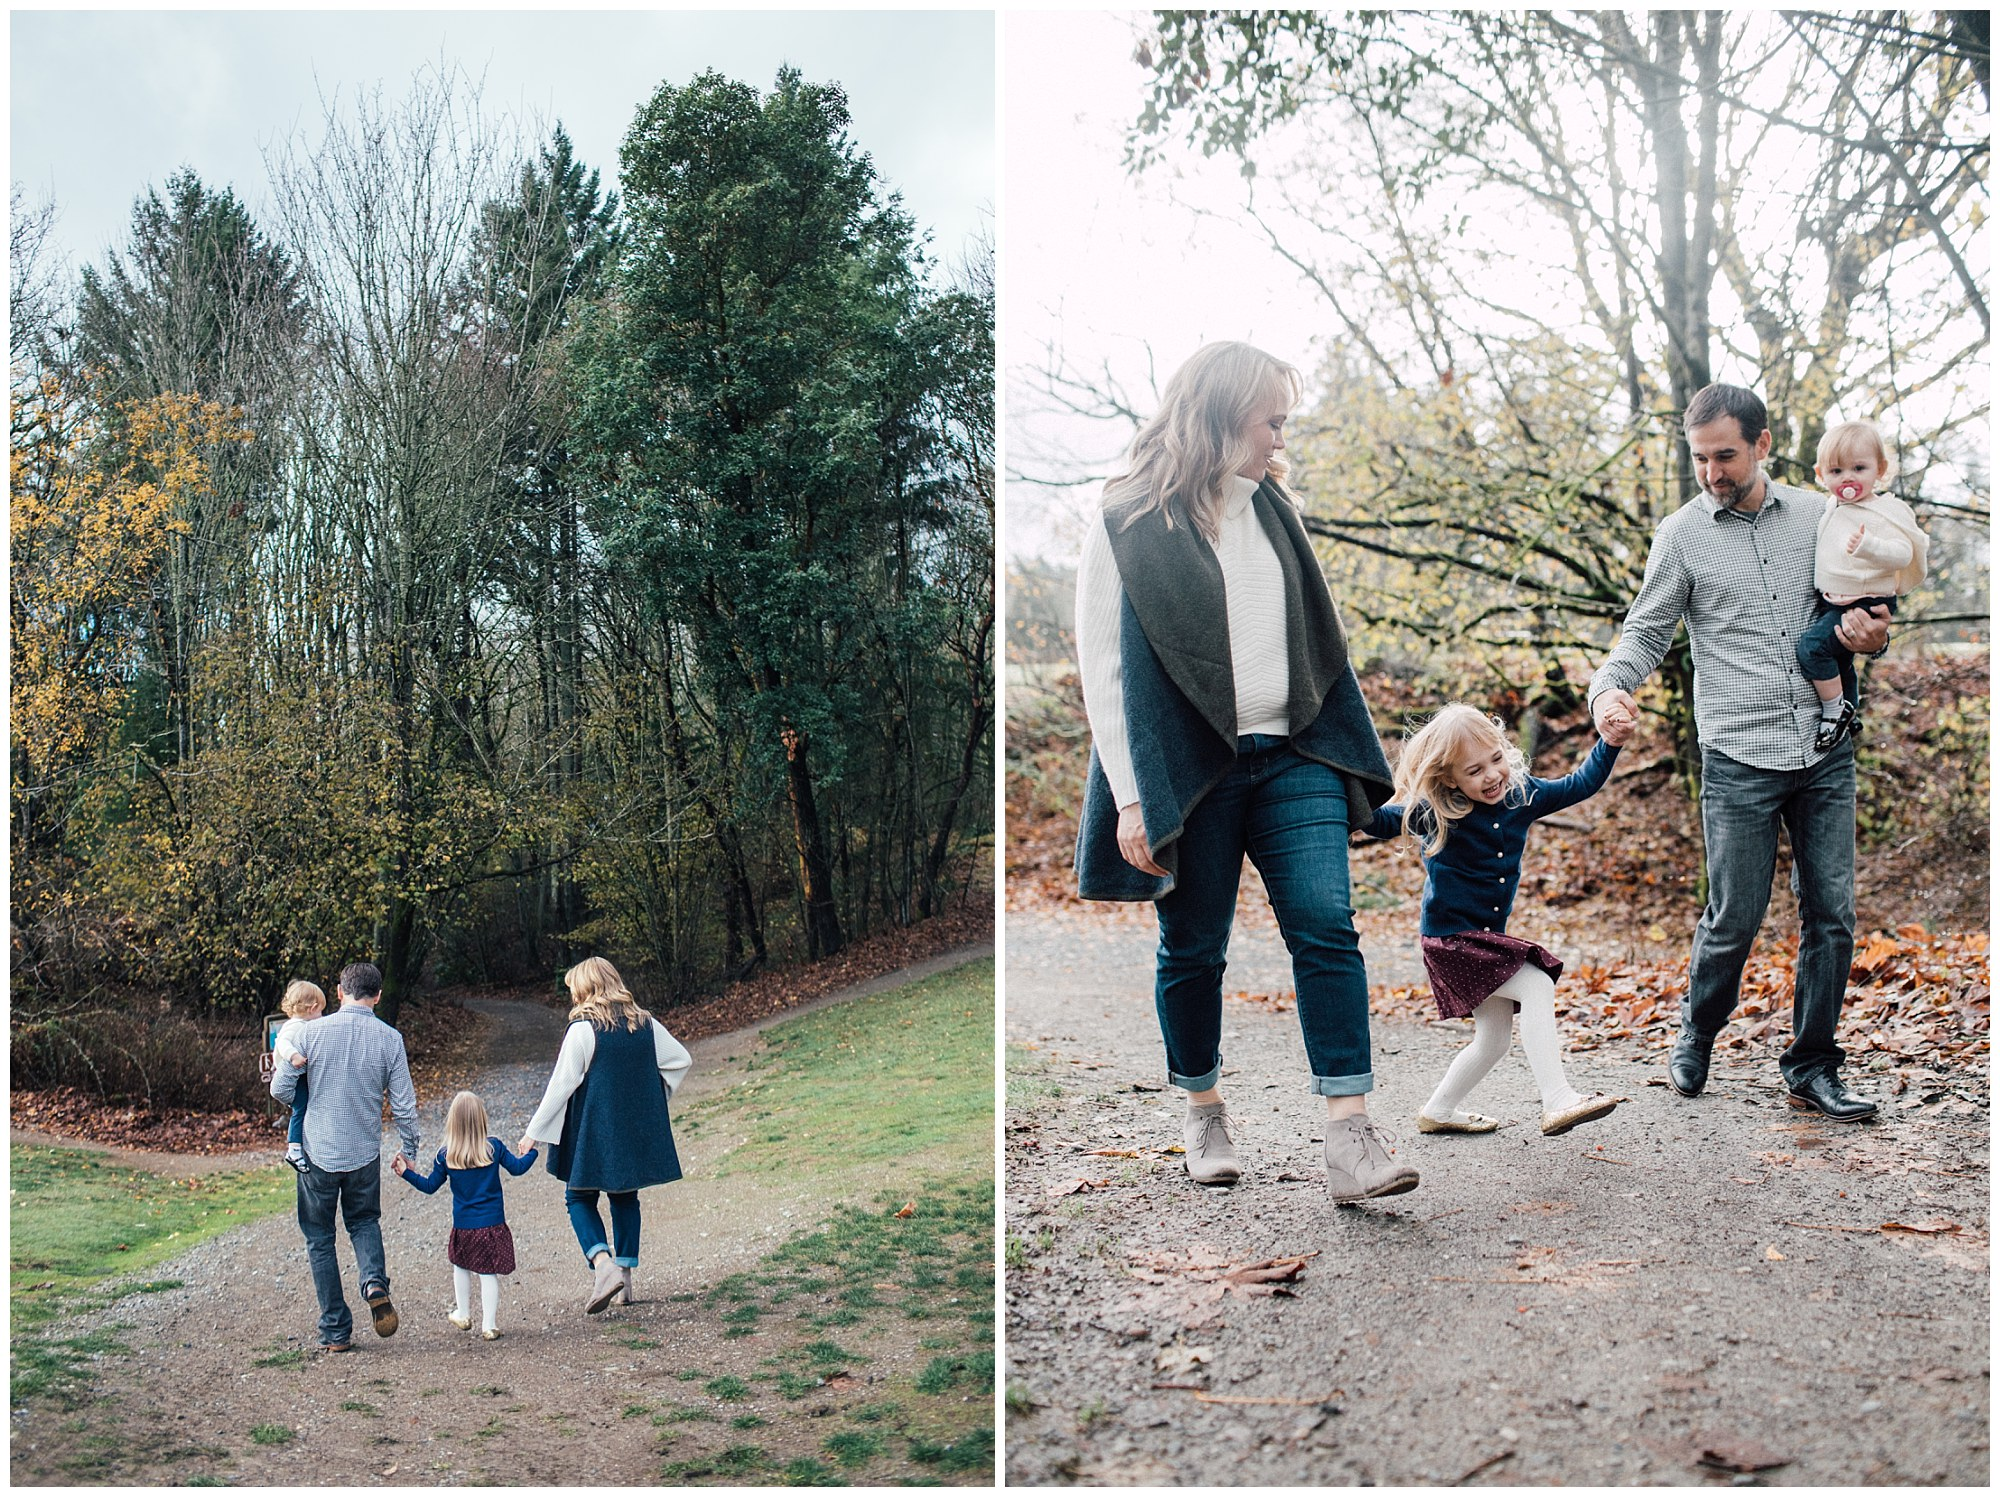 the Happy Film Company - St. Edwards Park - Seattle Family Photography - family walking with kids in forest holding hands